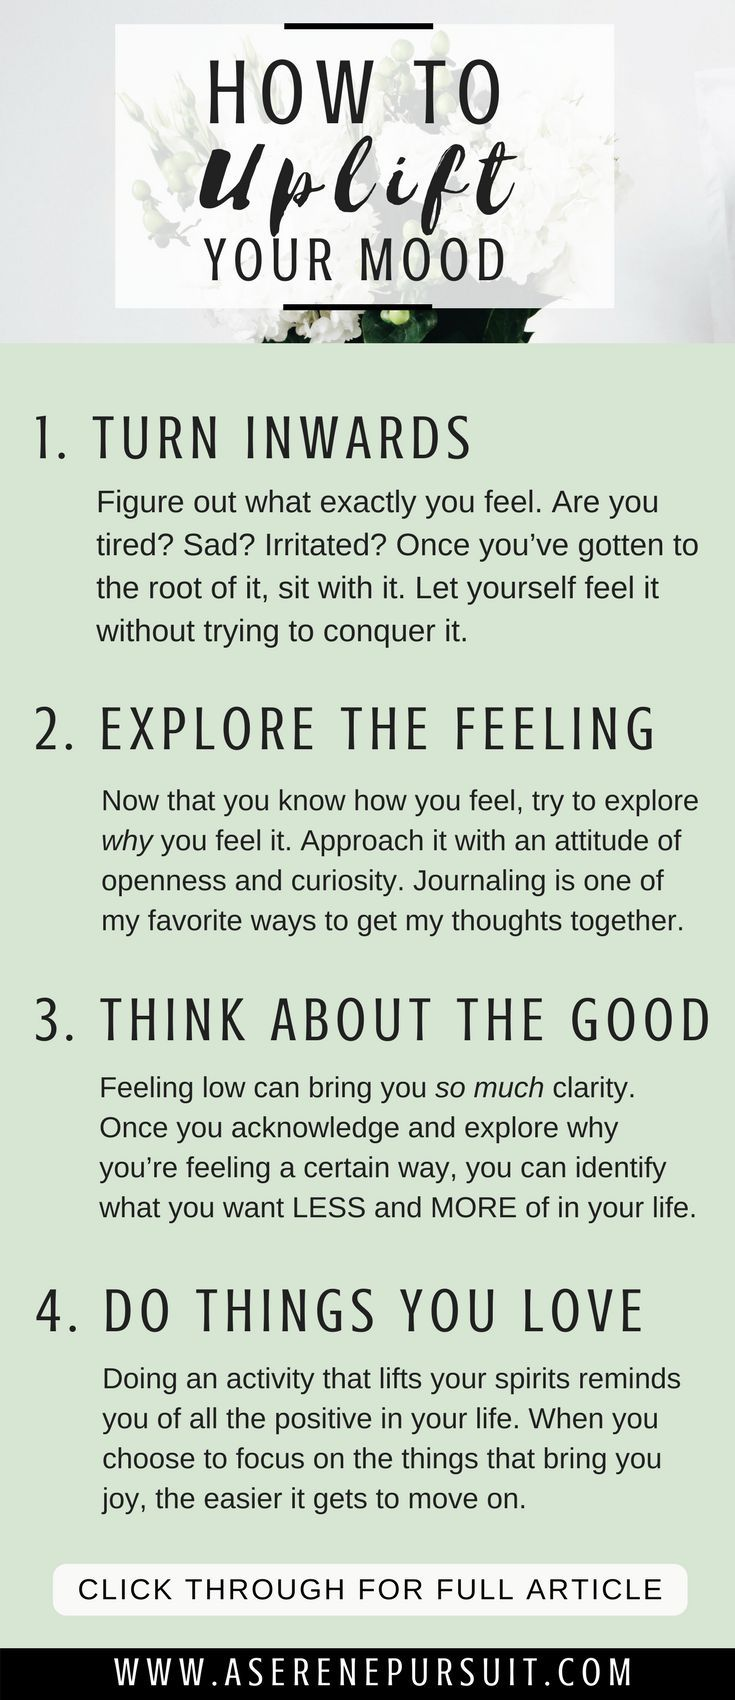 How to Improve Your Mood   We all go through low moods – but it's about arming yourself with the tools you need once you're ready to conquer it. Here are 4 tips to help you feel better and find your way back to happiness. mental health  uplift your mood   improve mood articles   improve mood life   personal growth   positive mindset   self-improvement   #positivethinking #mindset #happy